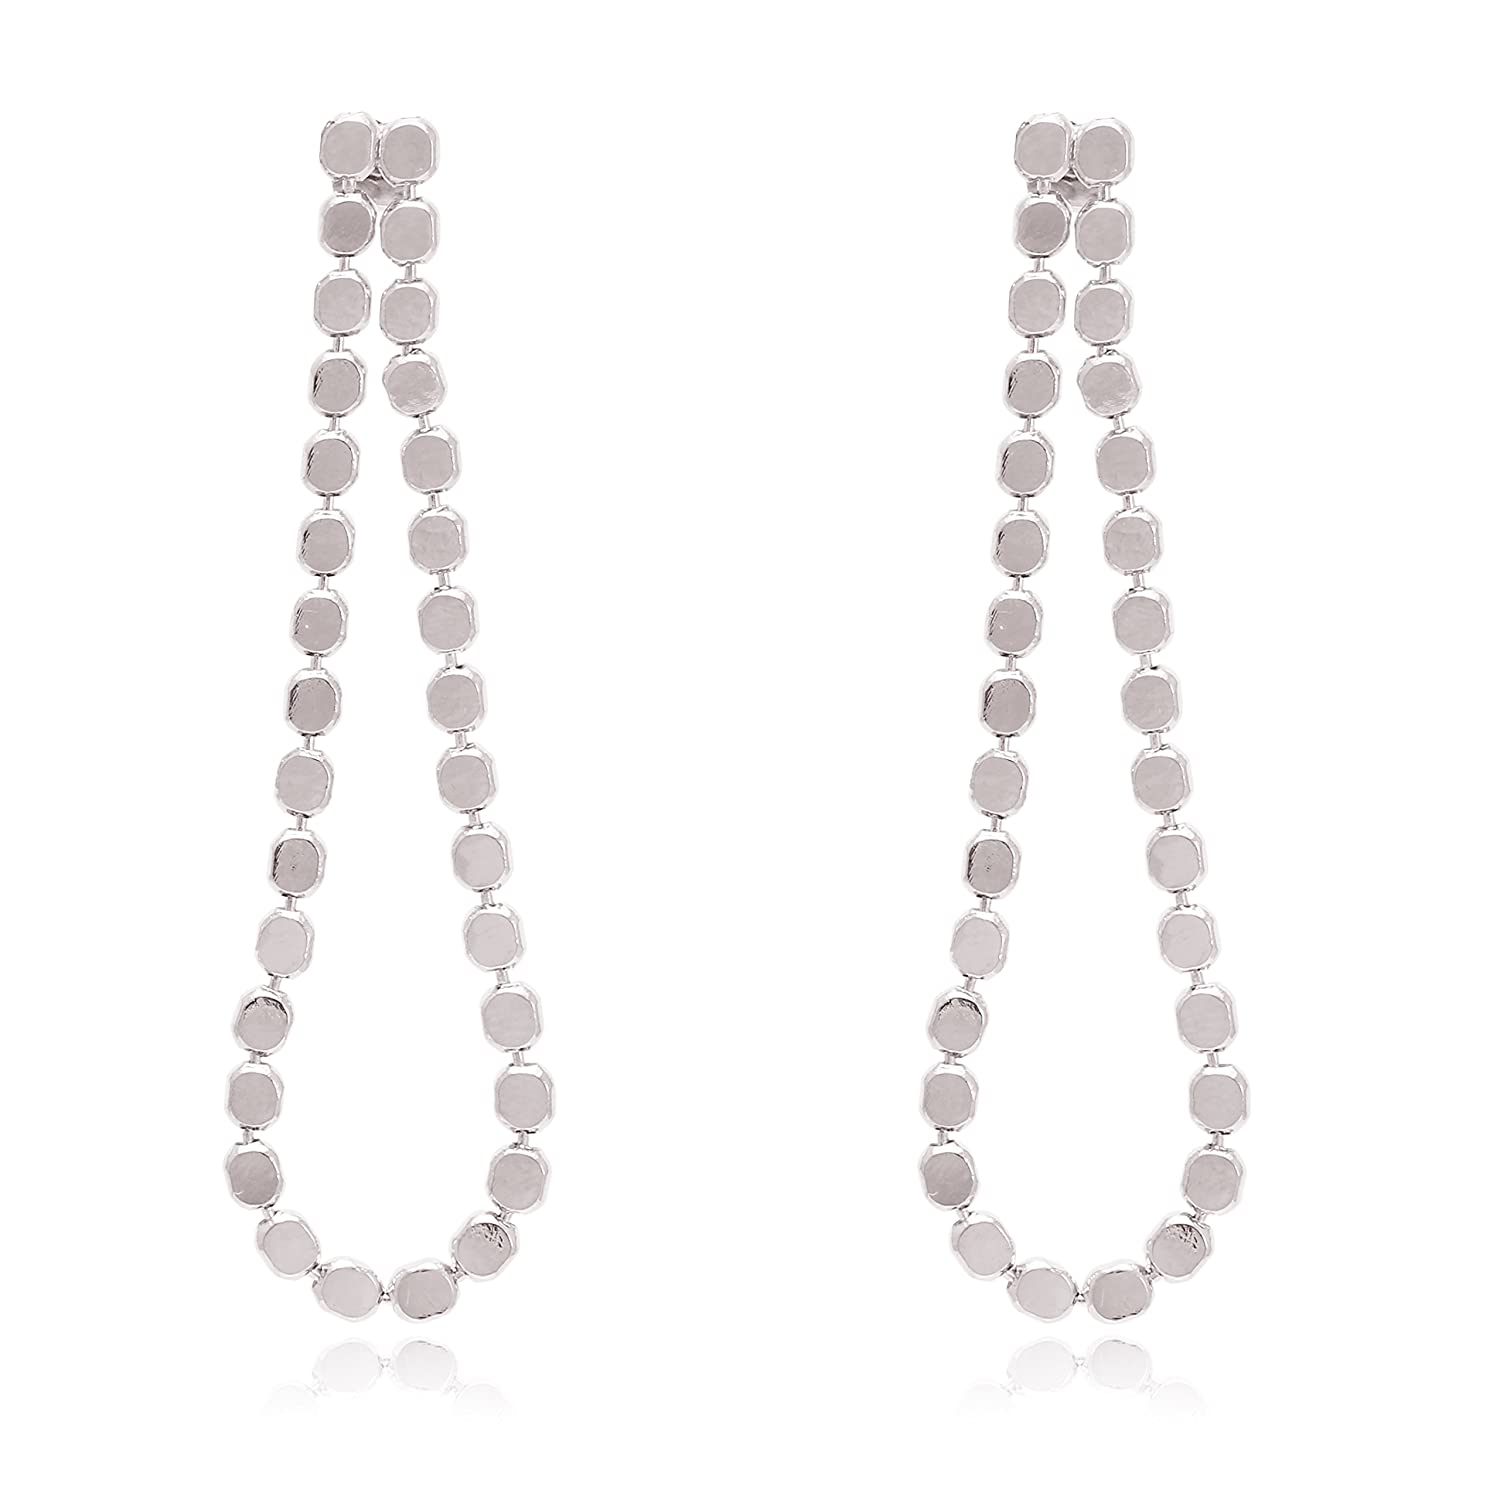 Dots Raindrop Artistic Modern Metal Frame with Gold or Silver Plated Statement Earrings